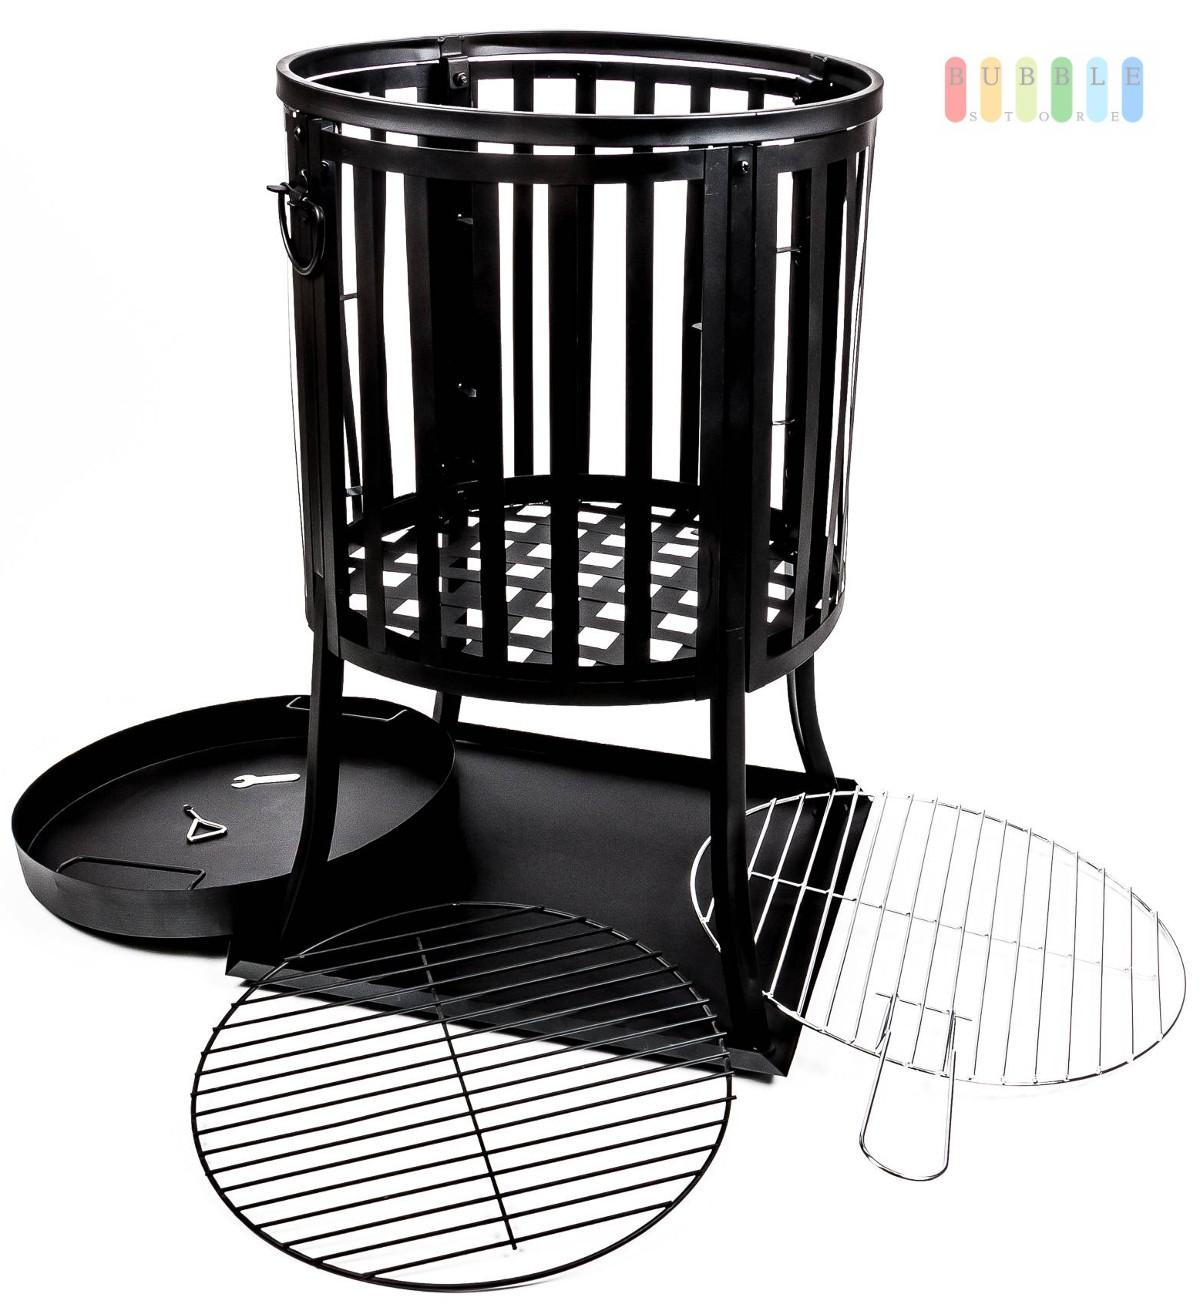 feuerkorb terrassenkamin gartenofen gartenfeuer feuerschale mit grill grillrost ebay. Black Bedroom Furniture Sets. Home Design Ideas